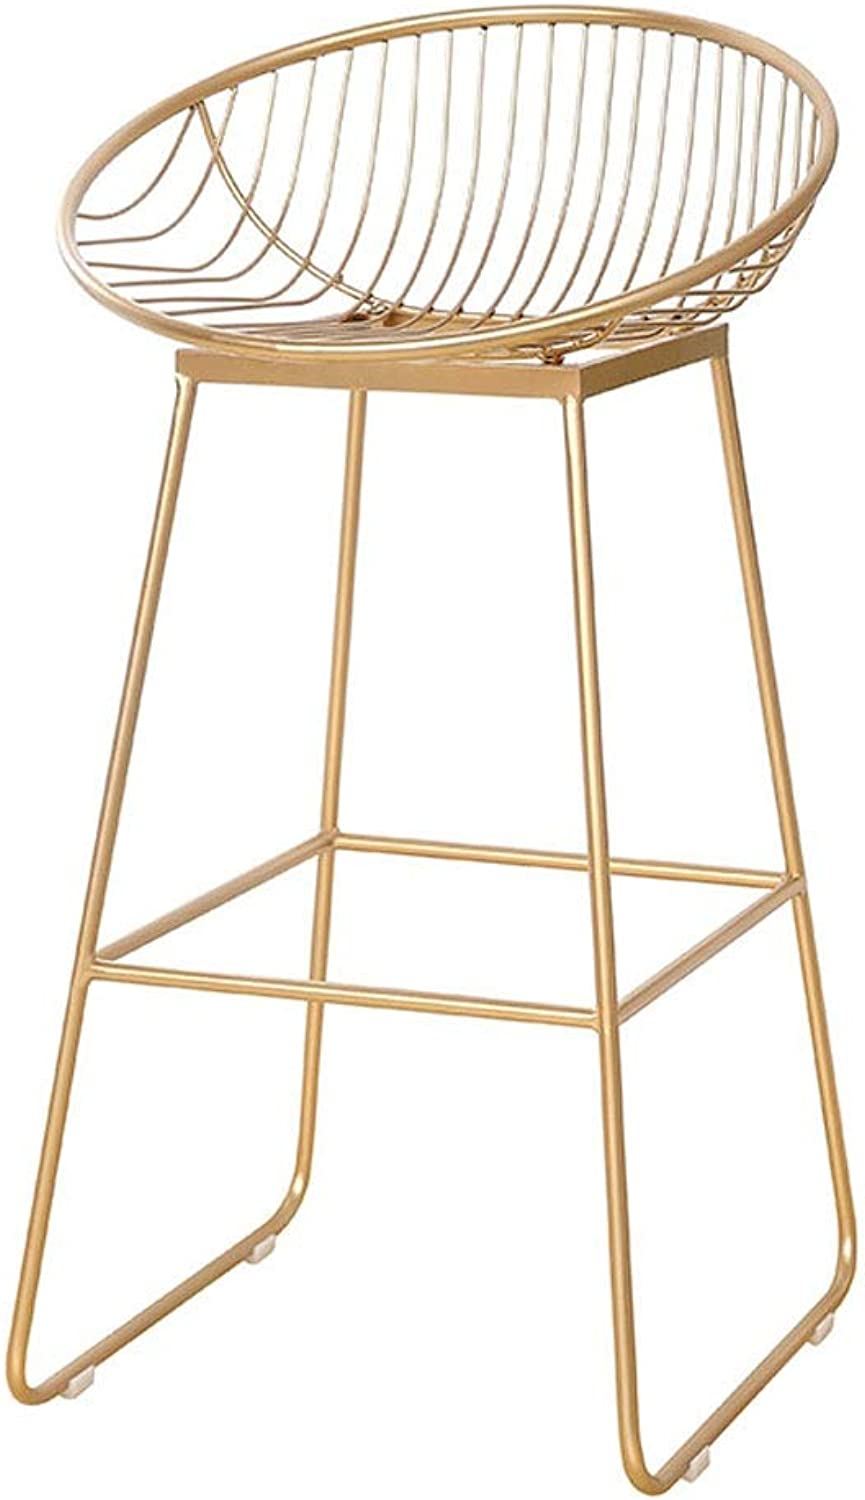 Metal Bar Stool European Backrest High Stool Simple Cafe Bar Seat Home Dining Chair Stool (color   gold, Size   42cm)